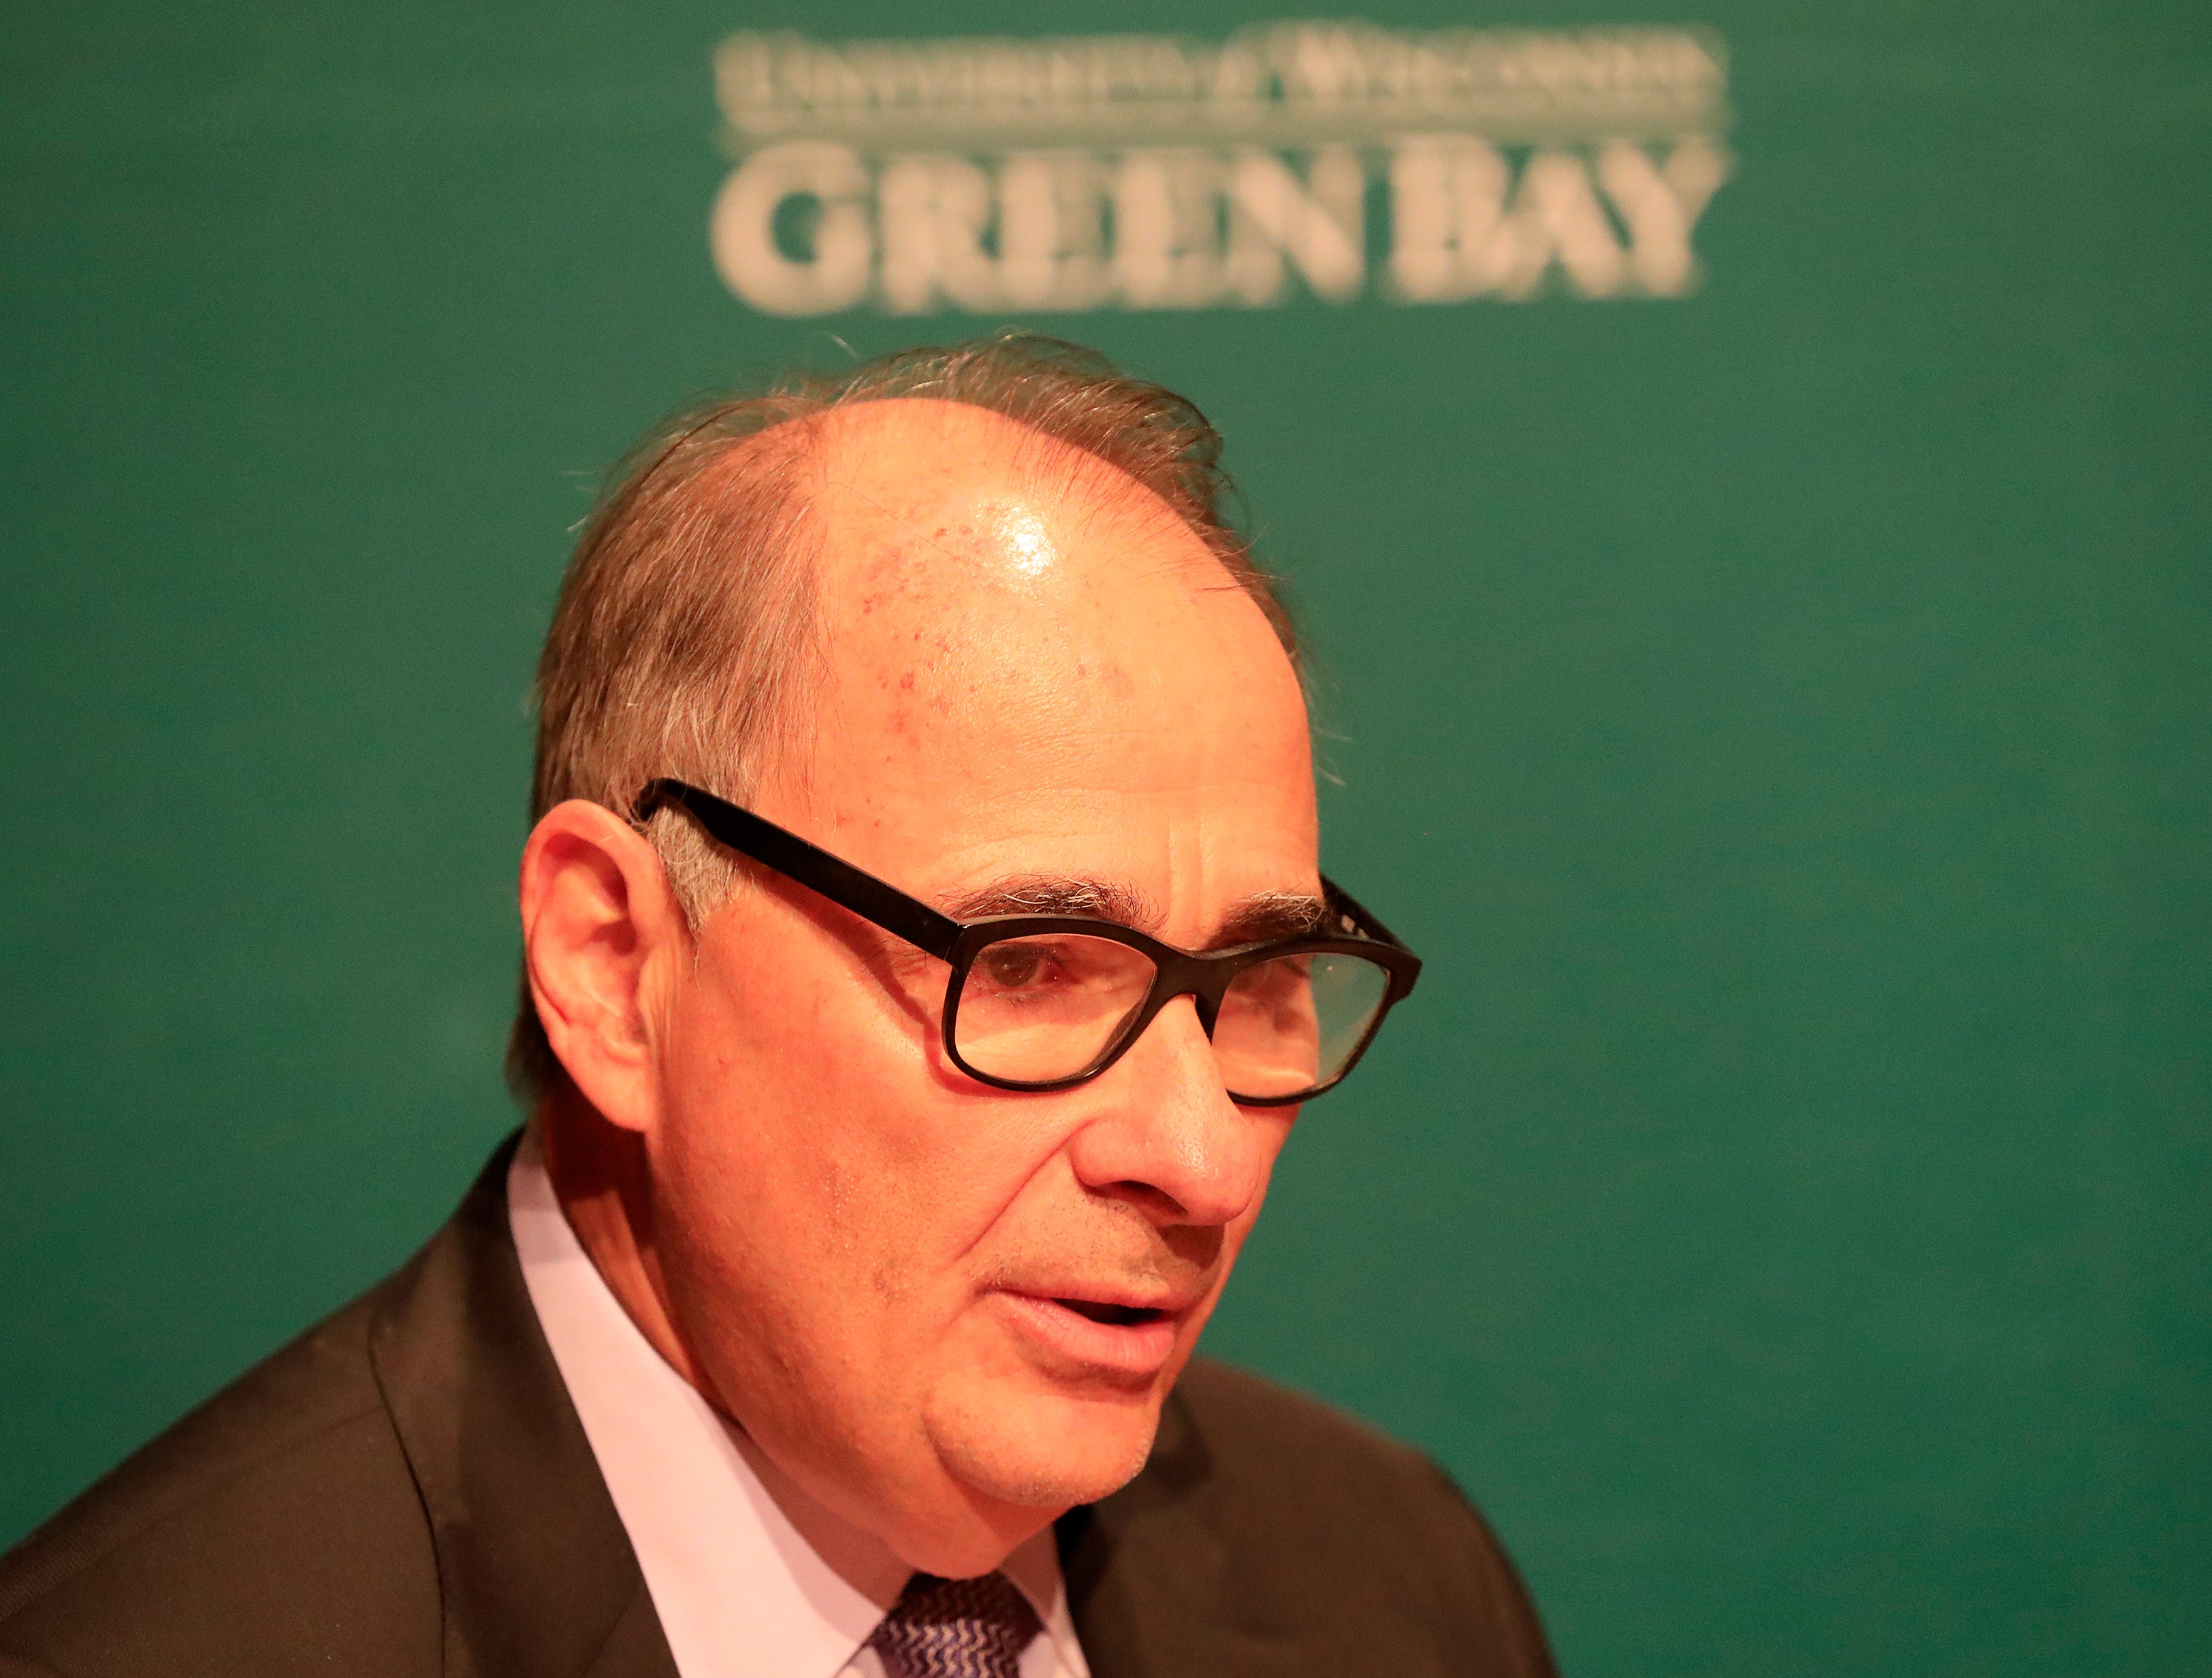 Political consultant David Axelrod speaks to members of the media before his point-counterpoint event with Karl Rove at UW-Green Bay on Wednesday, April 3, 2019 in Green Bay, Wis.